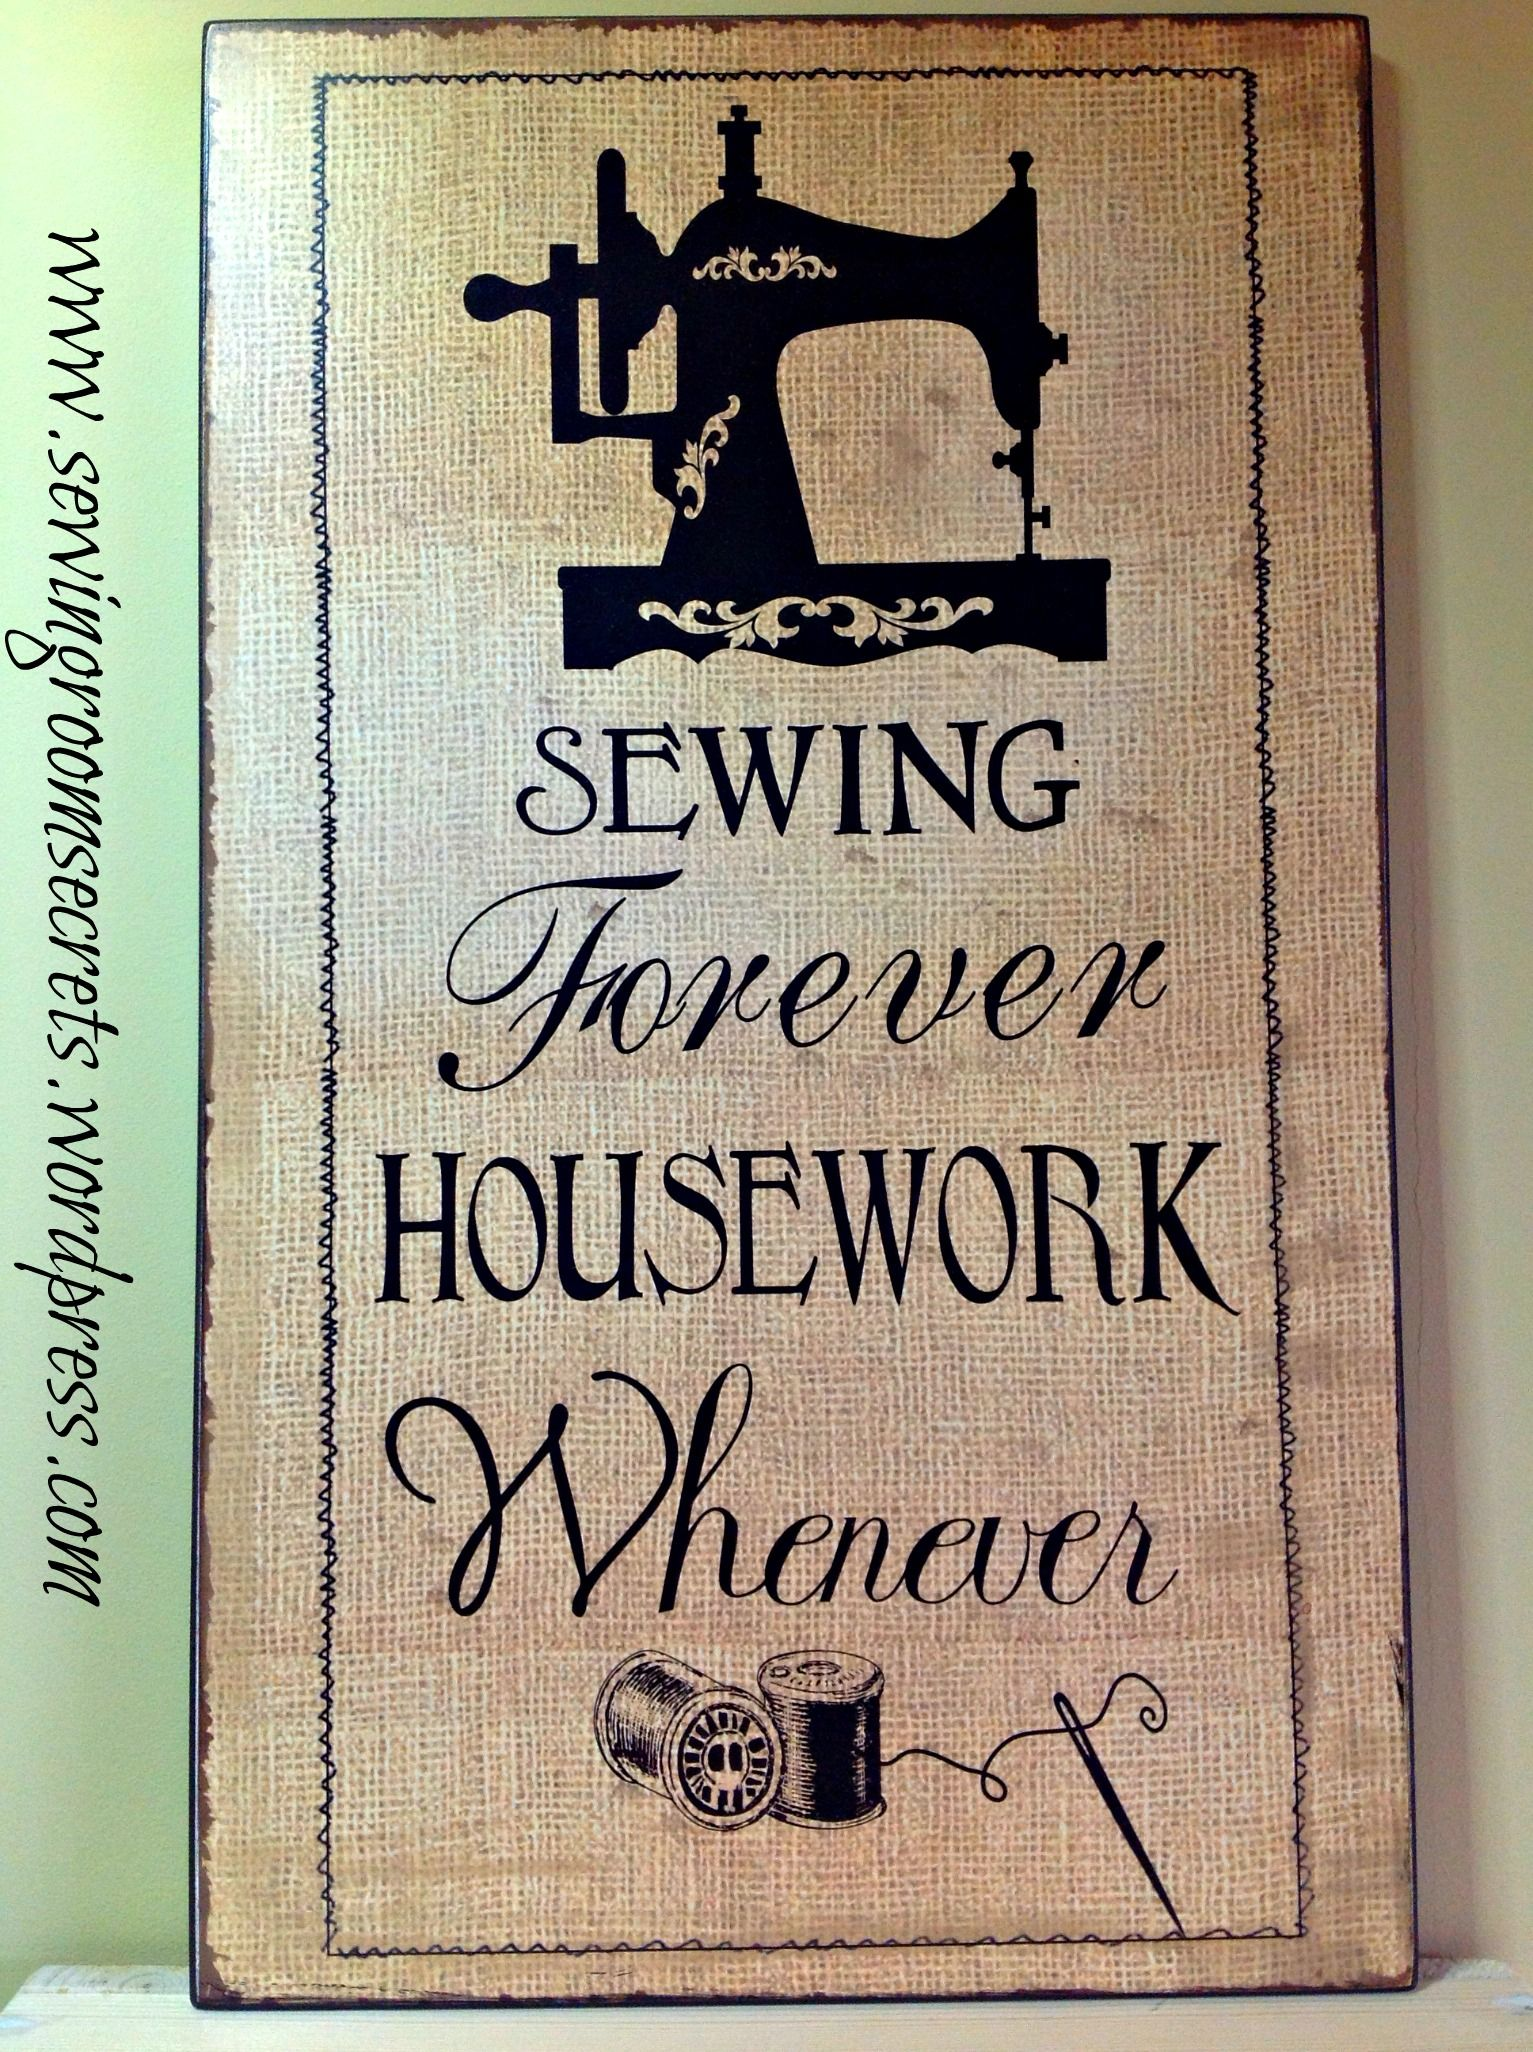 fun wall plaque for my sewing room